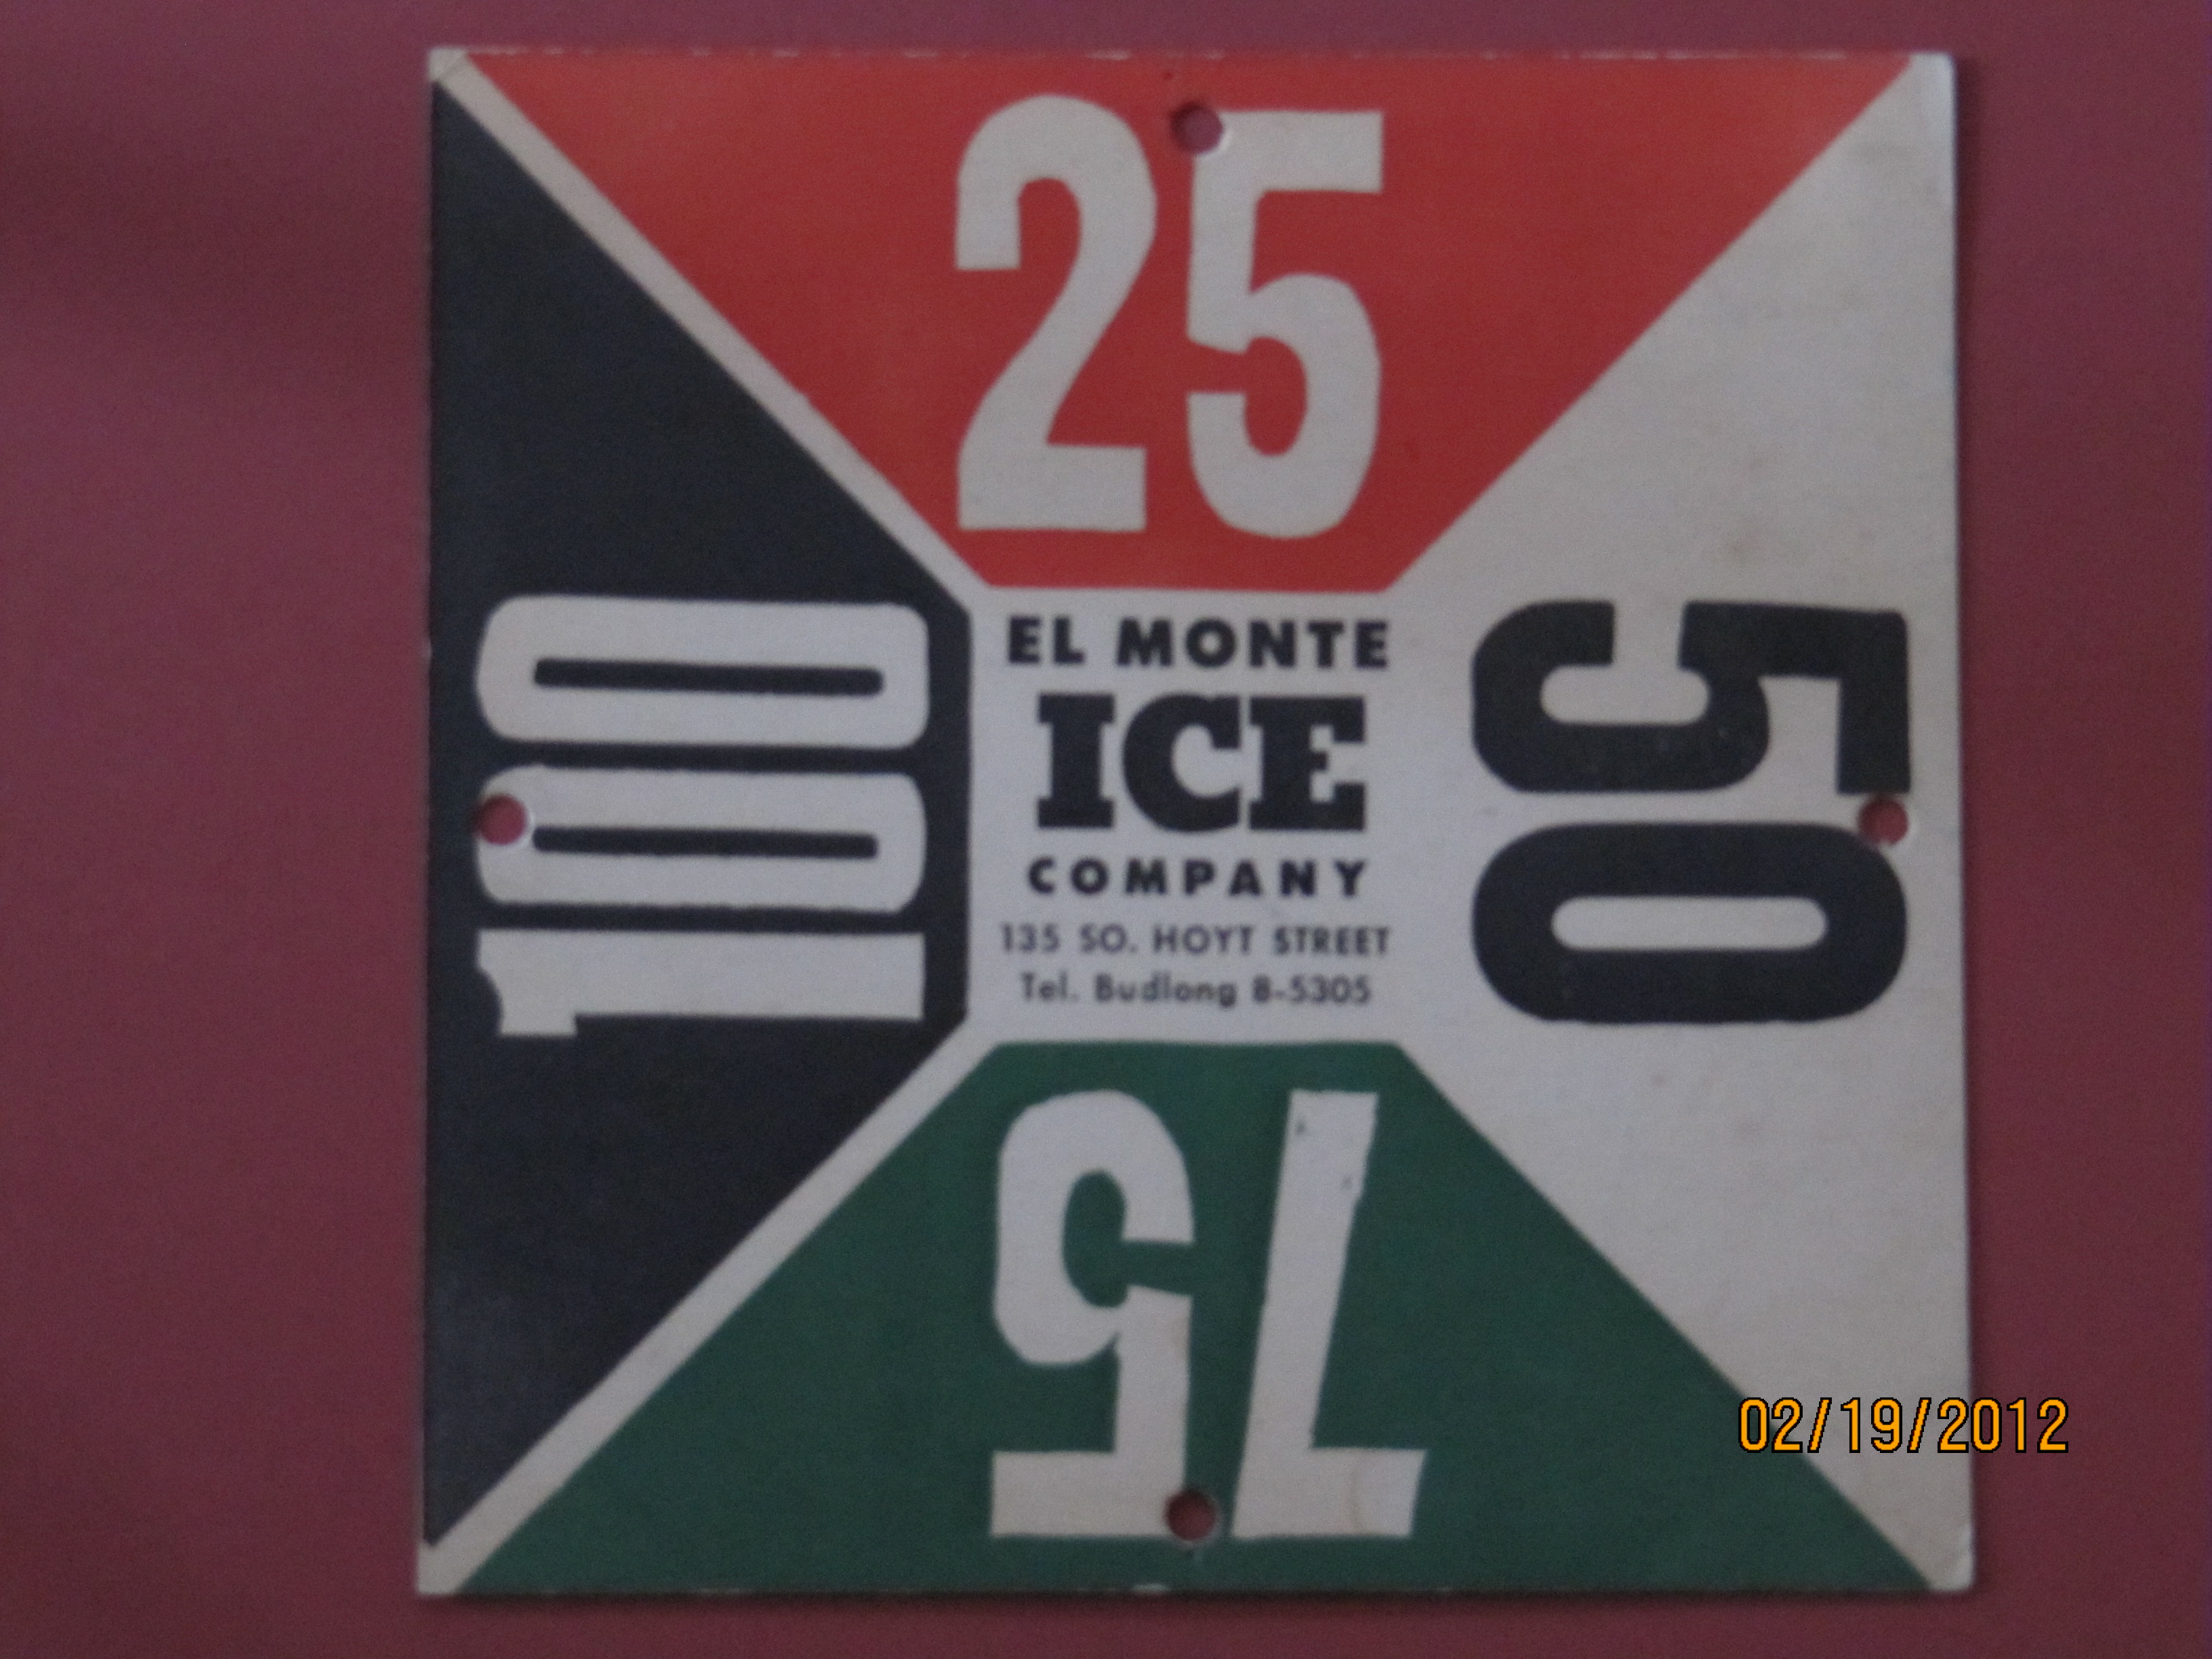 EL Monte Ice Co.